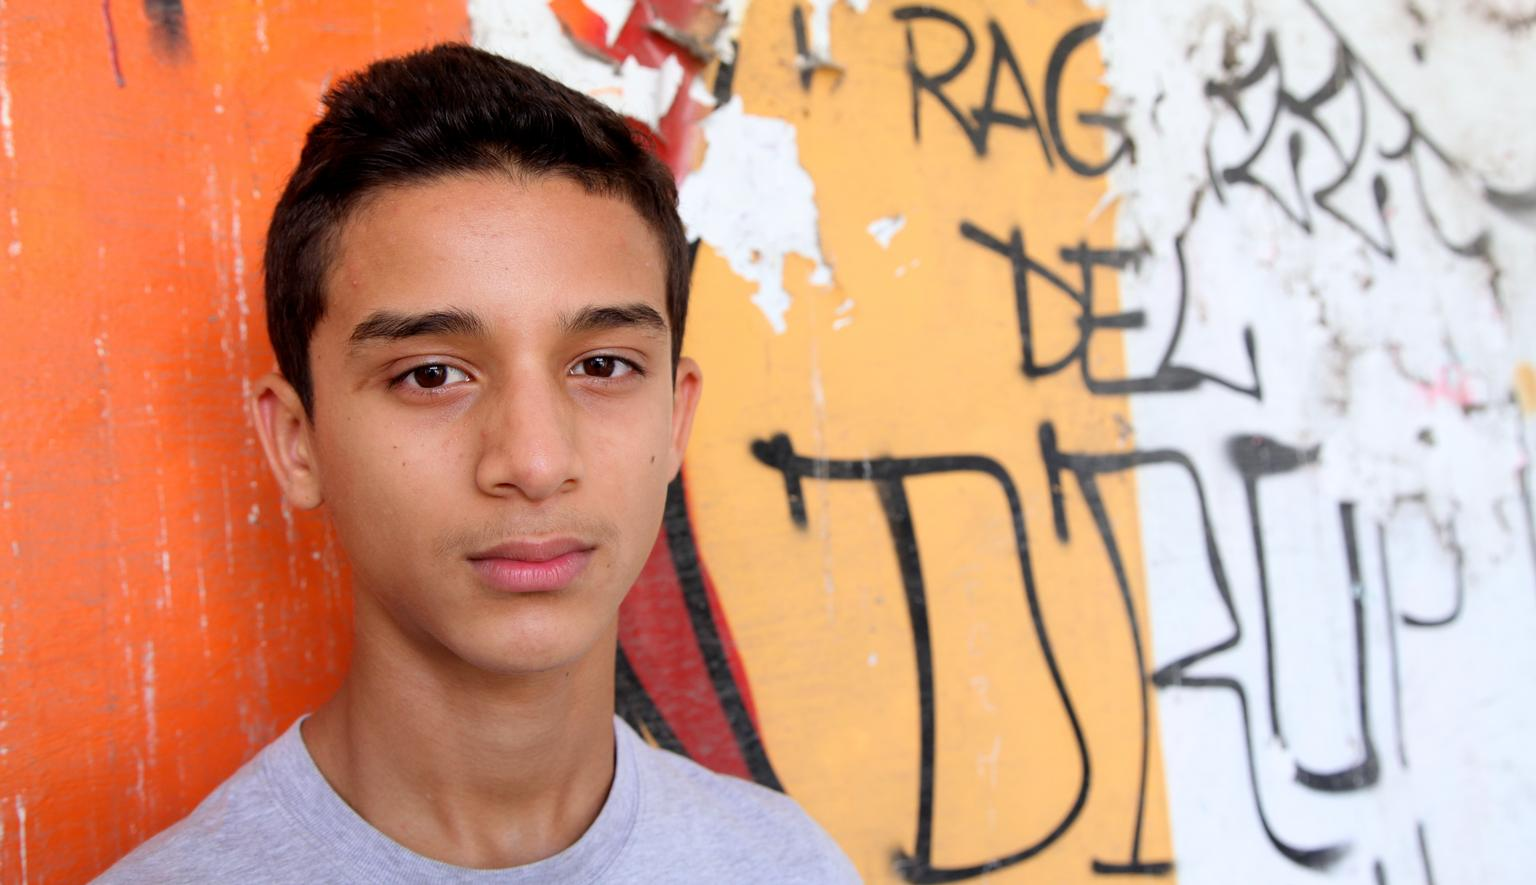 In Italy, Walid (14) stands outside the Alkadia youth centre, in Turin. The centre provides youths, most of whom are from disadvantaged families, with recreational and cultural activities, as well as help with schoolwork.